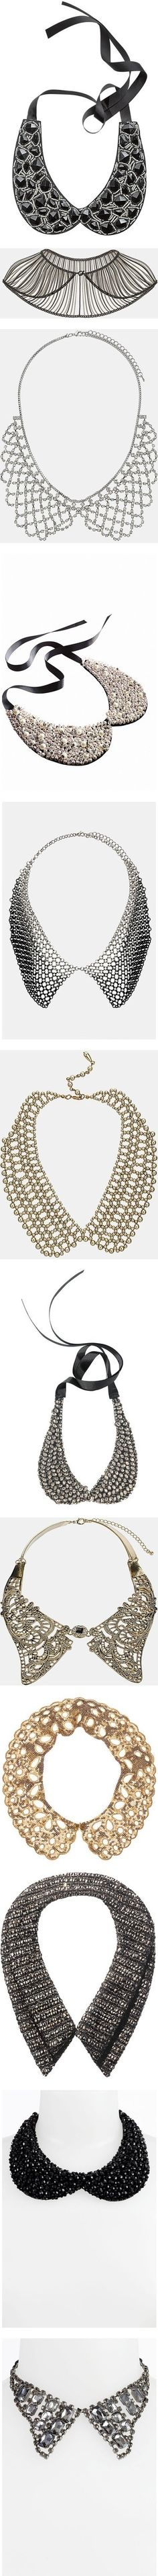 """""""NORDSTROM: Embellished Collars"""" by nordstrom on Polyvore by vera"""